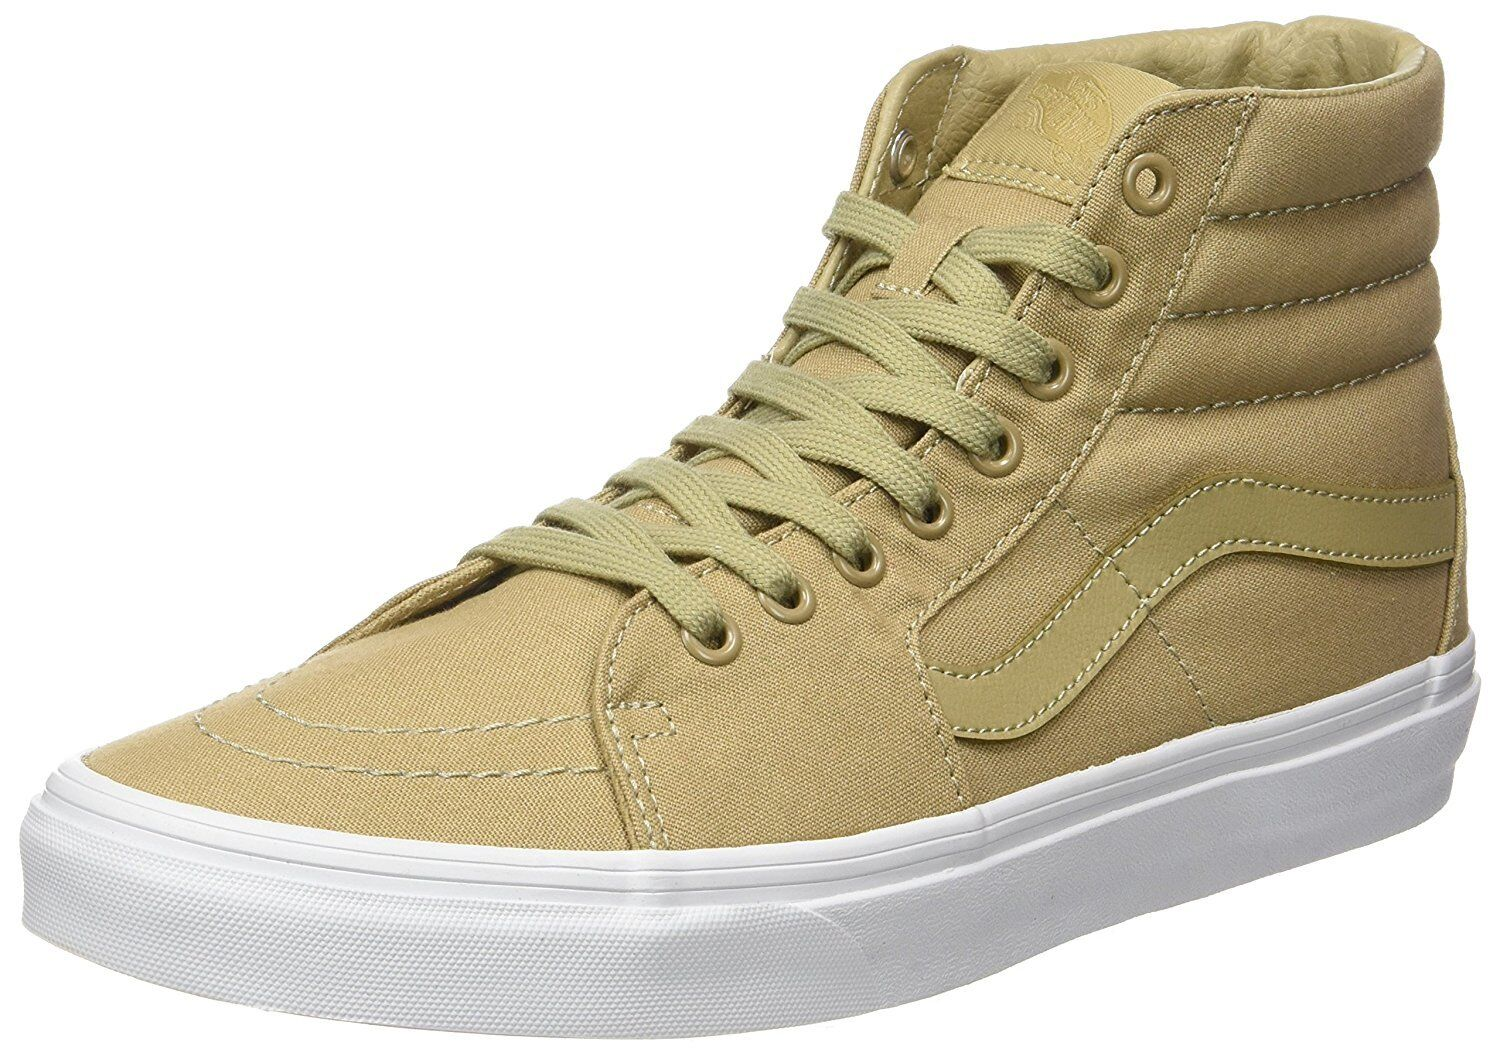 Vans Men's Ua SK8 Hi-Top Sneakers